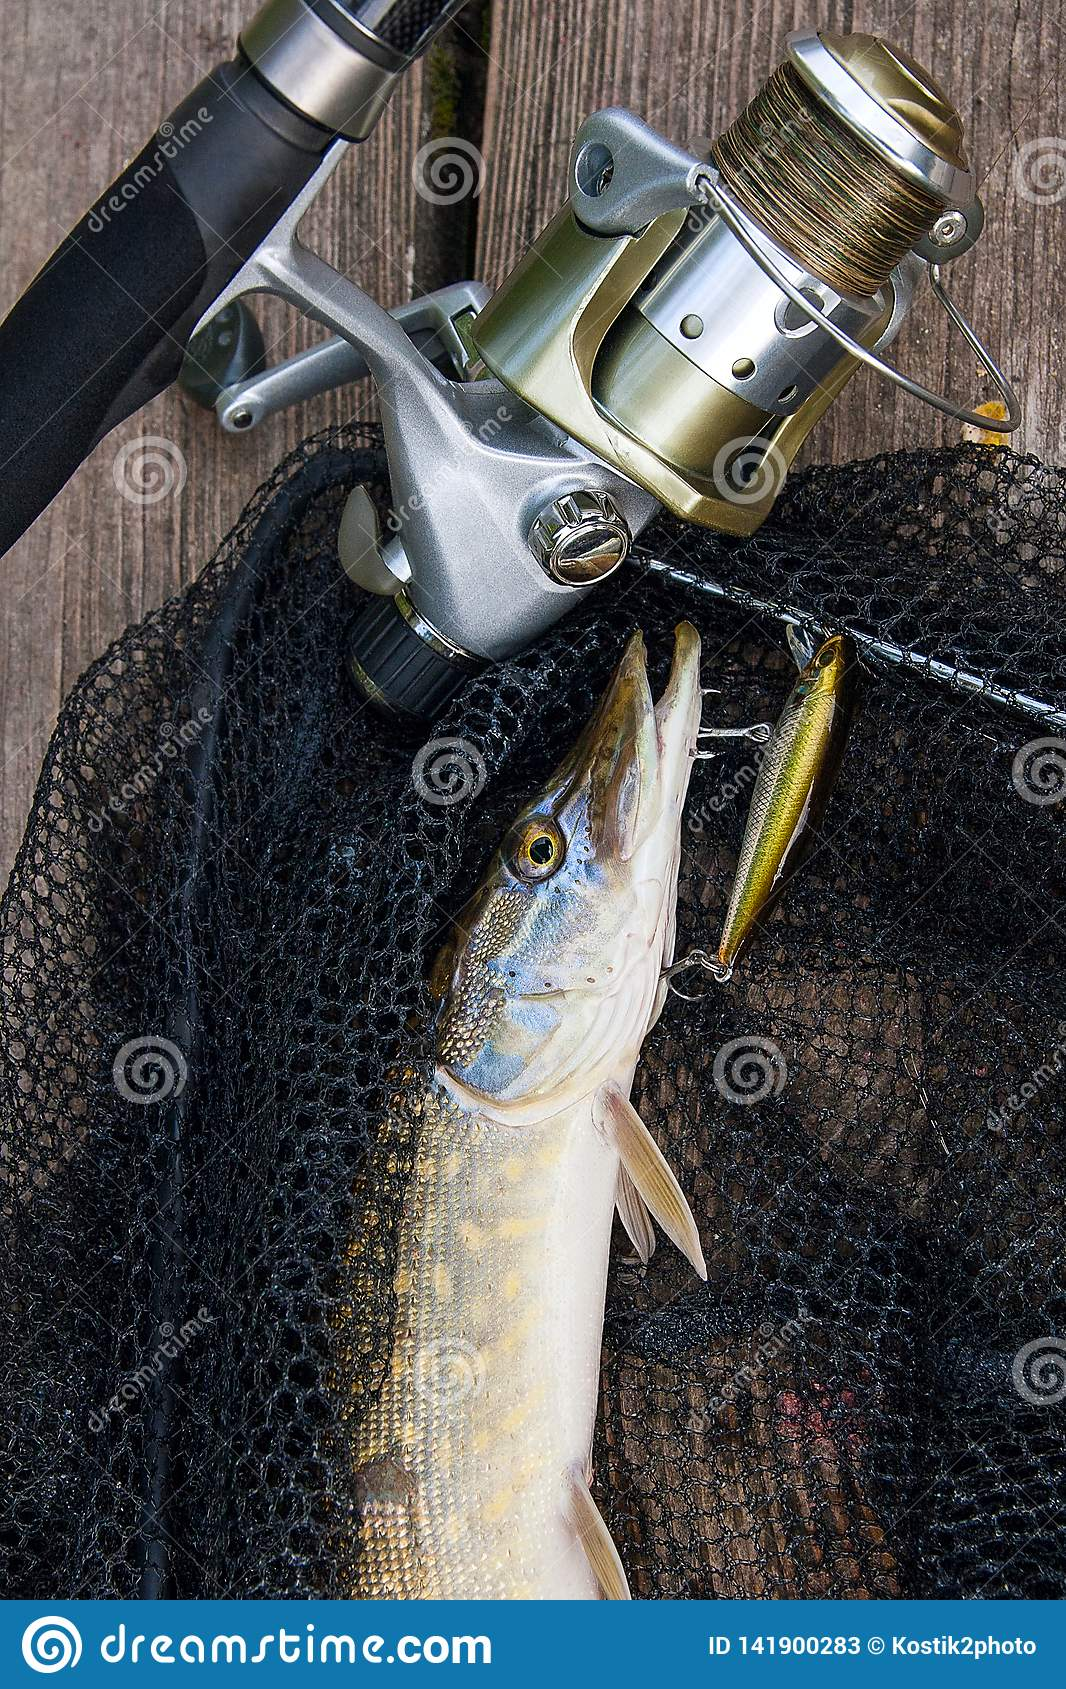 Freshwater pike with fishing lure in mouth and fishing equipment lies on black fishing net